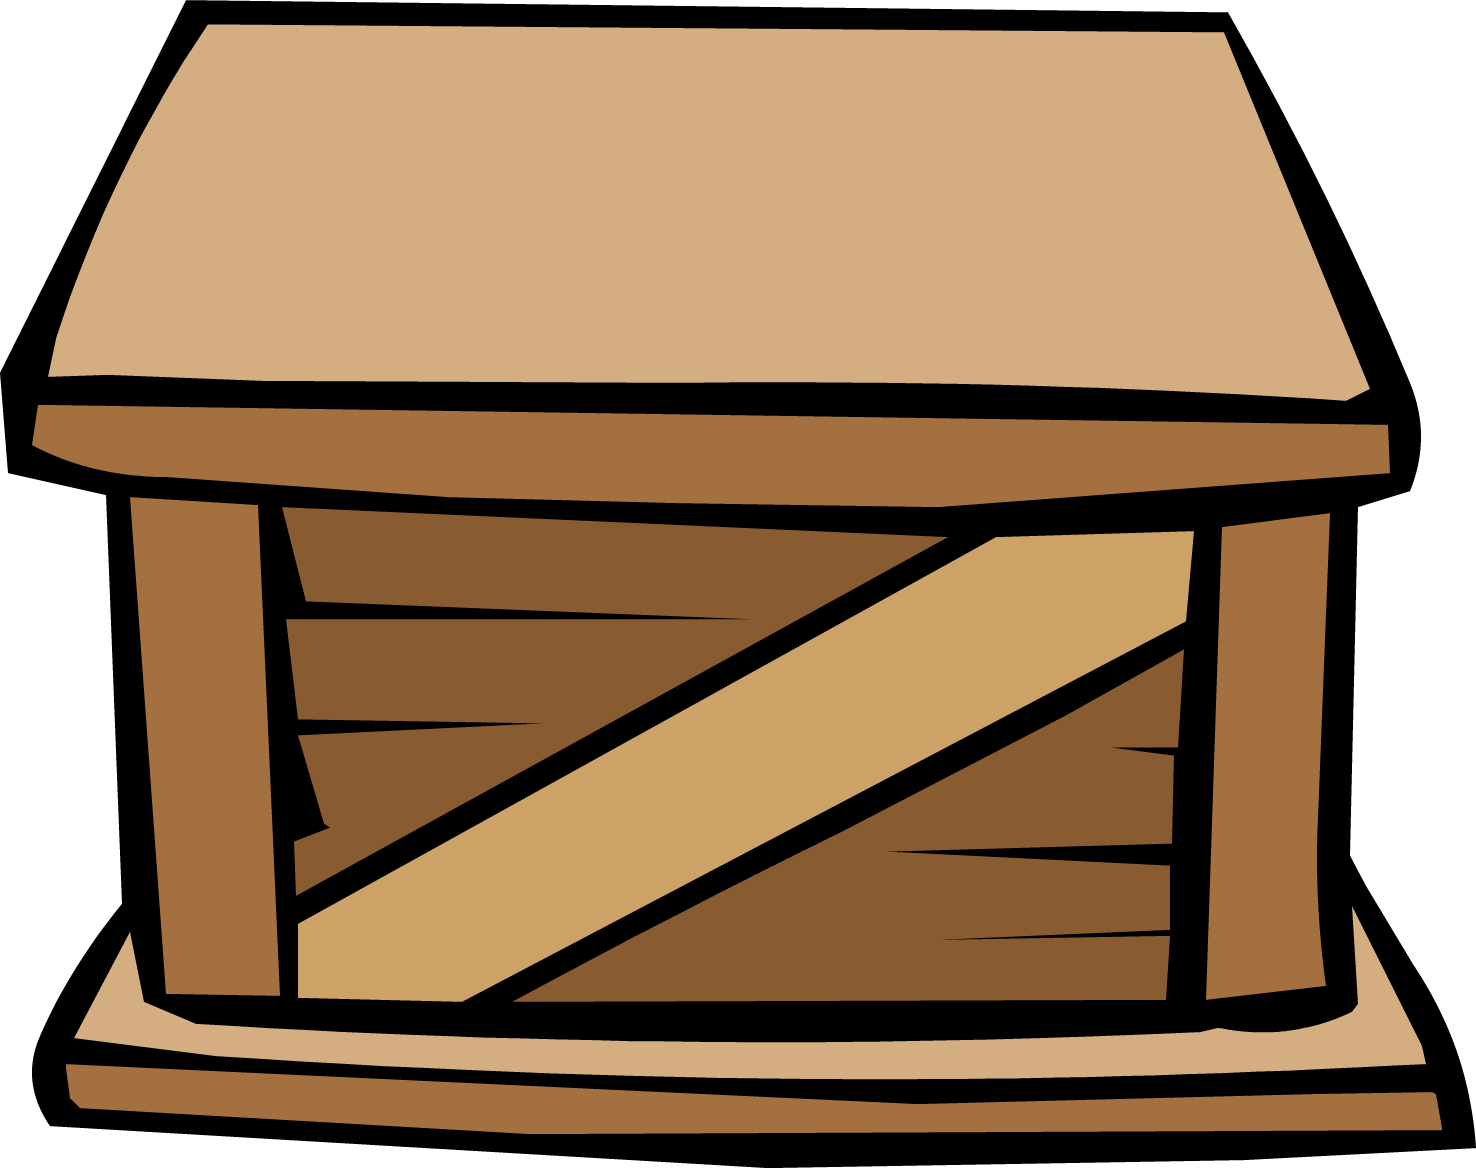 Crate png. Image wooden club penguin